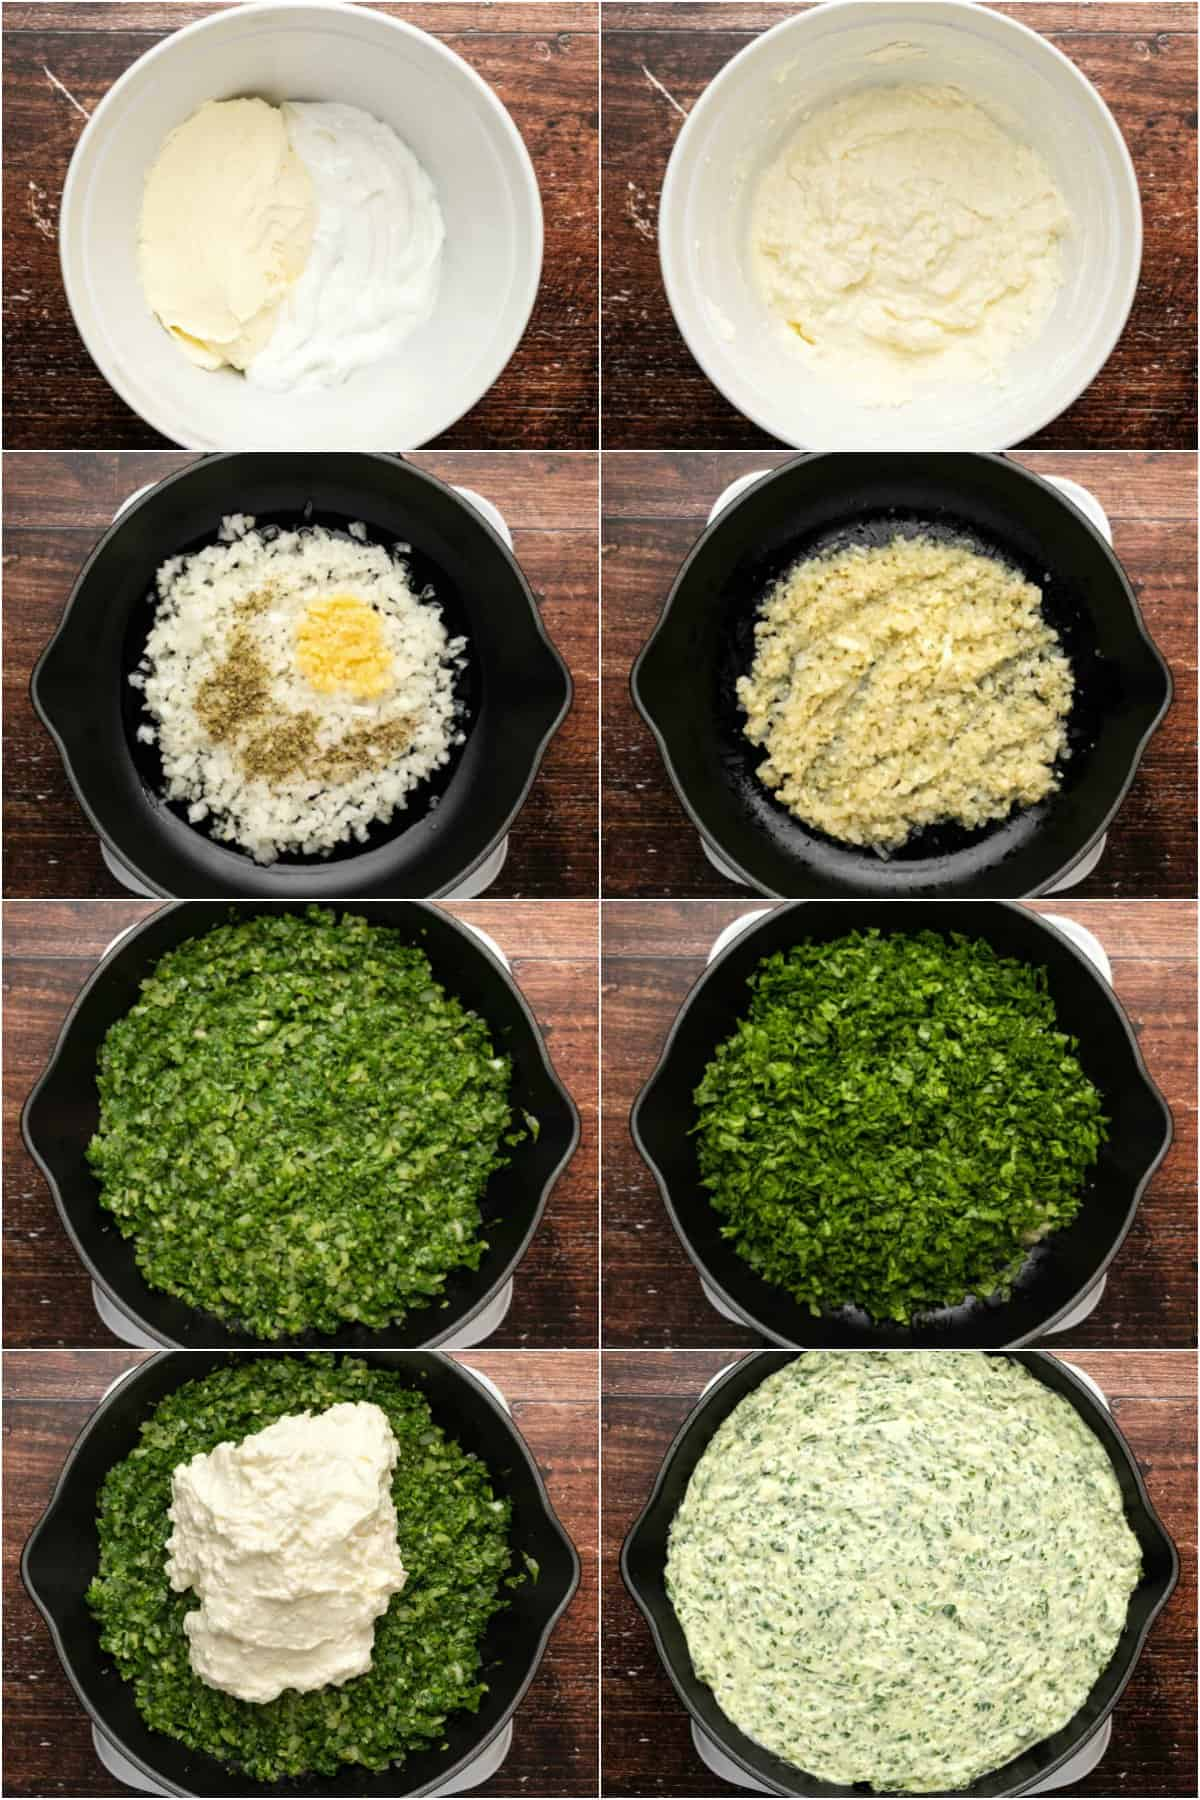 Step by step process photo collage of making a baked spinach dip.